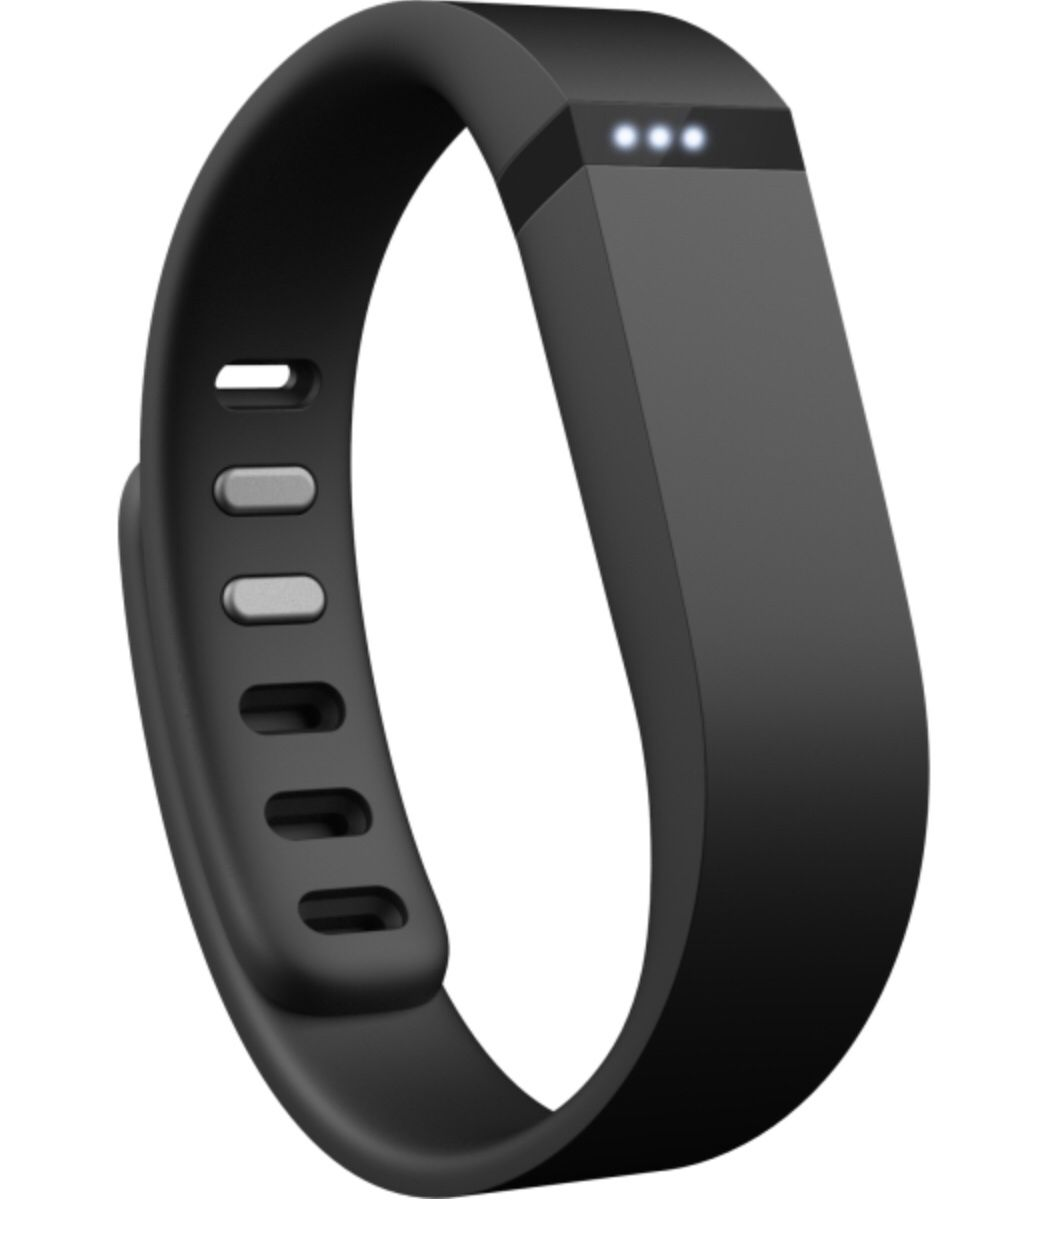 Fitbit Flex Wireless Activity + Sleep Wristband - Black. Available at Sport Chek #HillcrestlovesDad